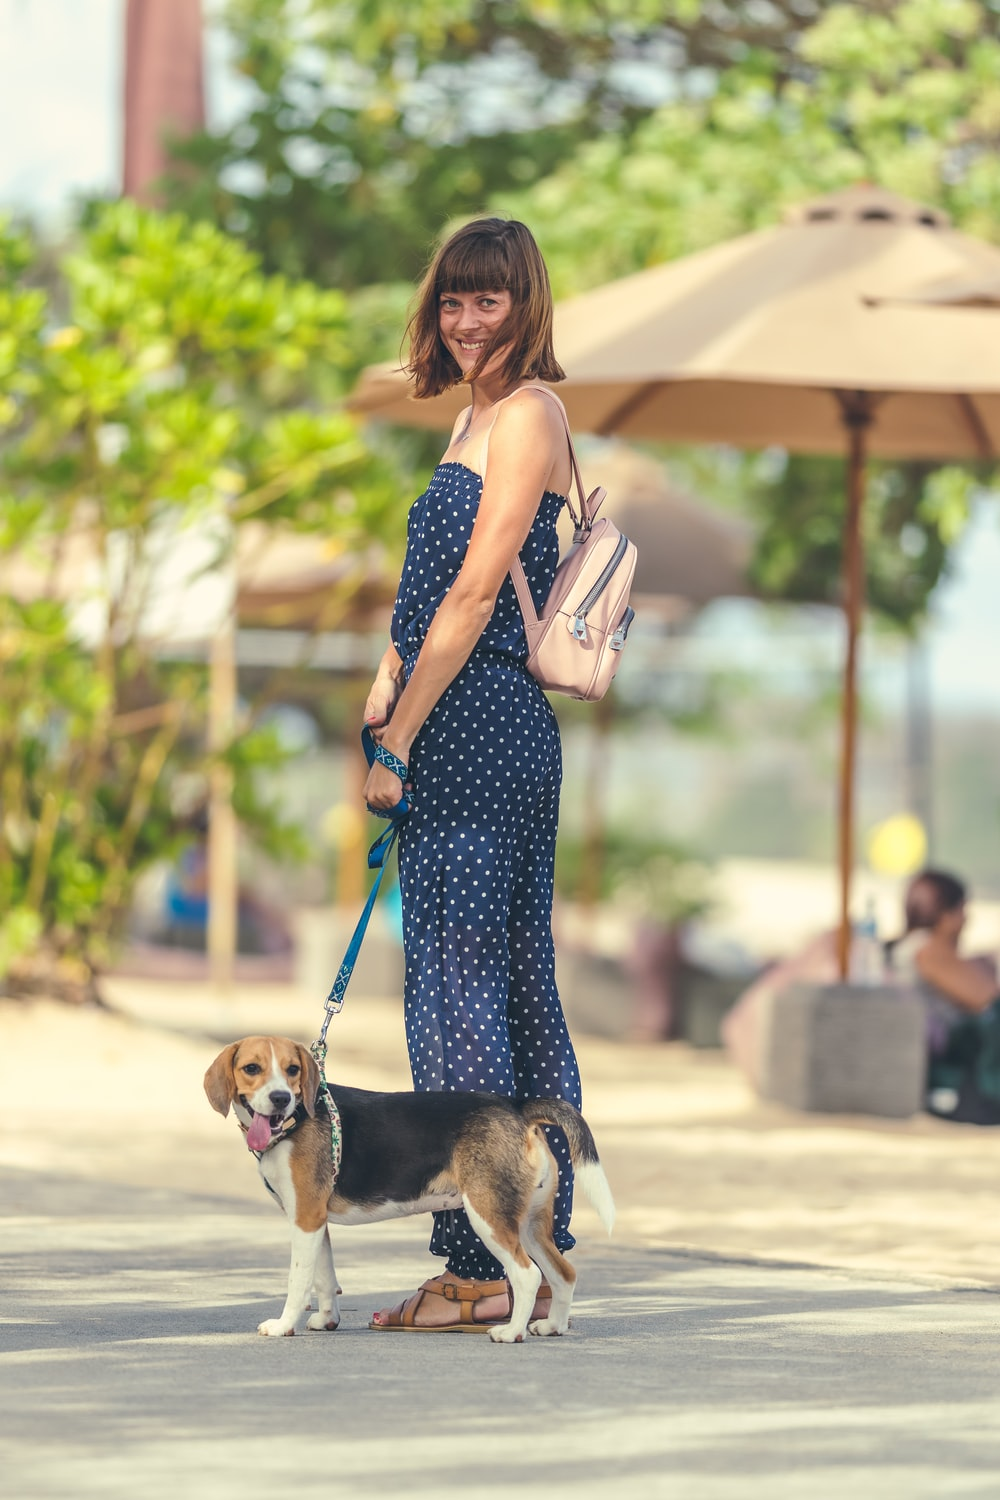 woman in black and white polka dot dress carrying brown and white short coated dog